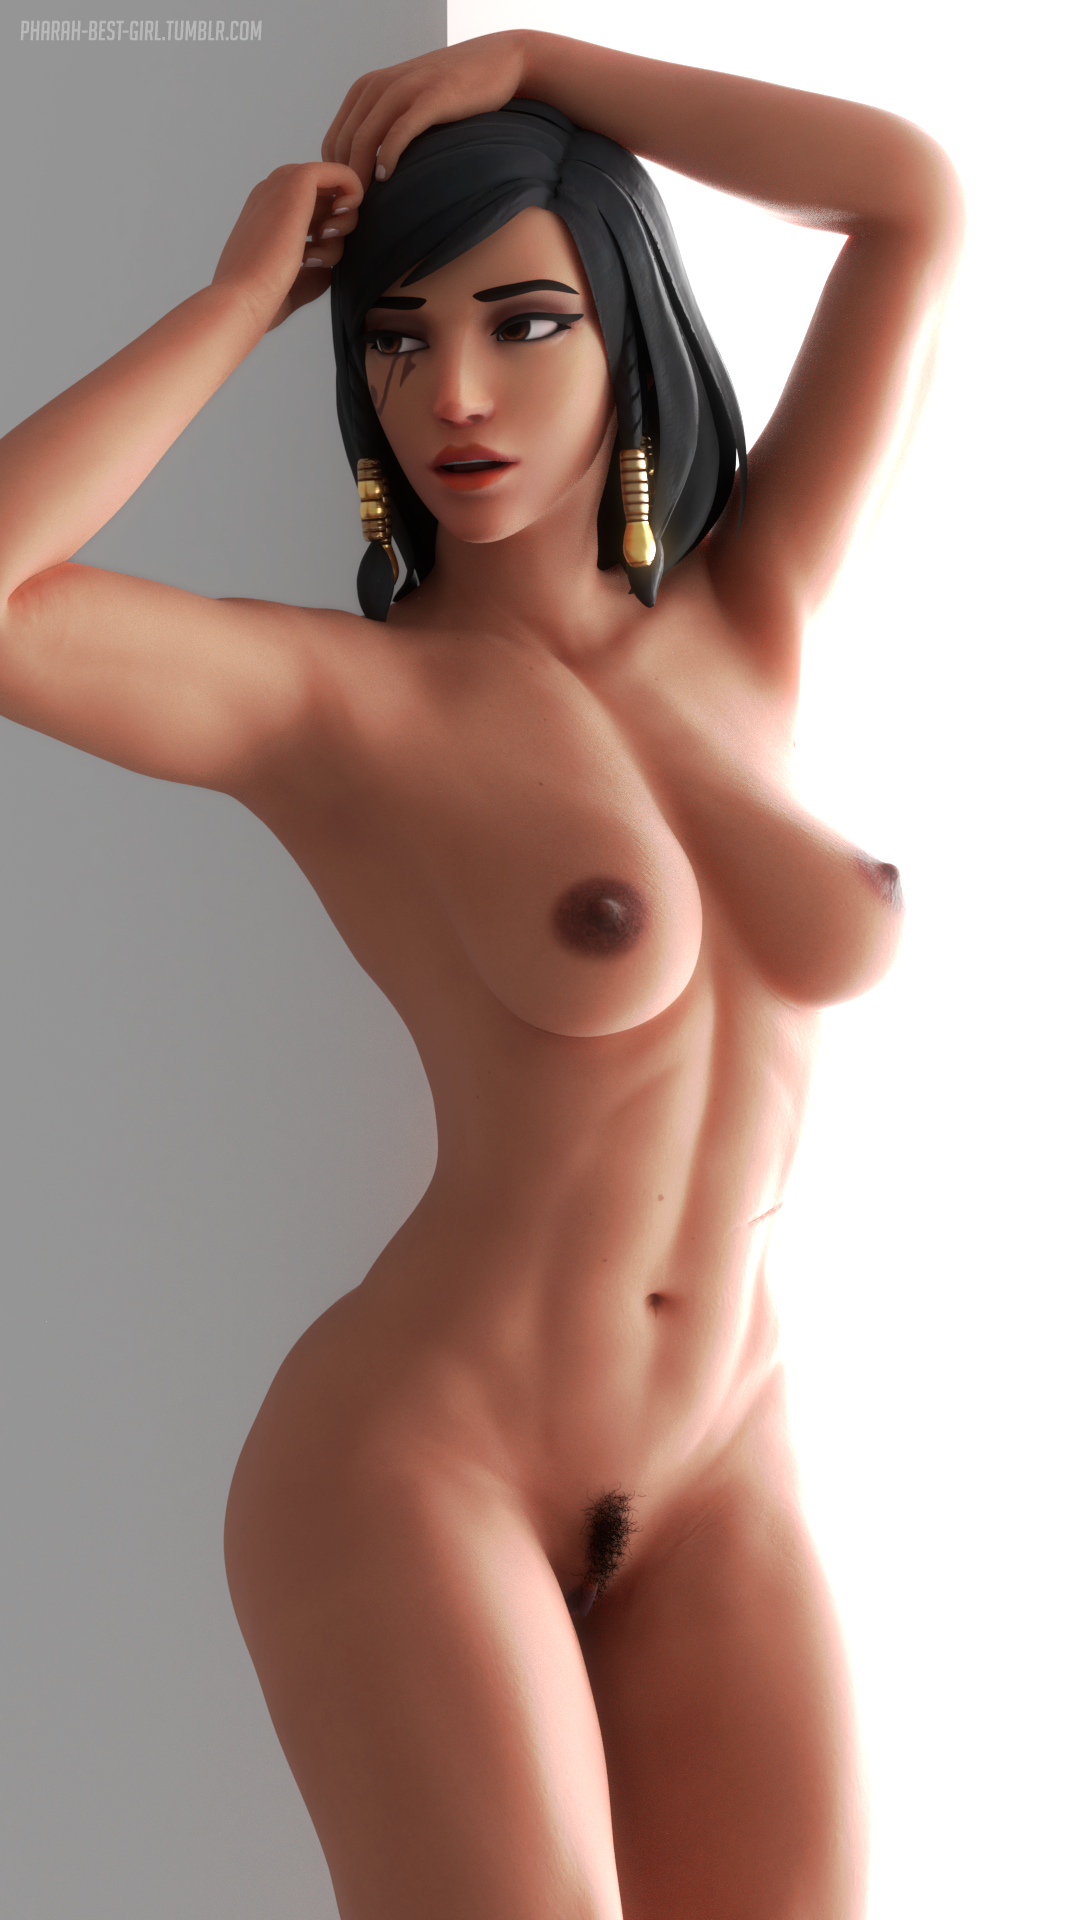 2394790 - Overlook Pharah pharah-best-girl